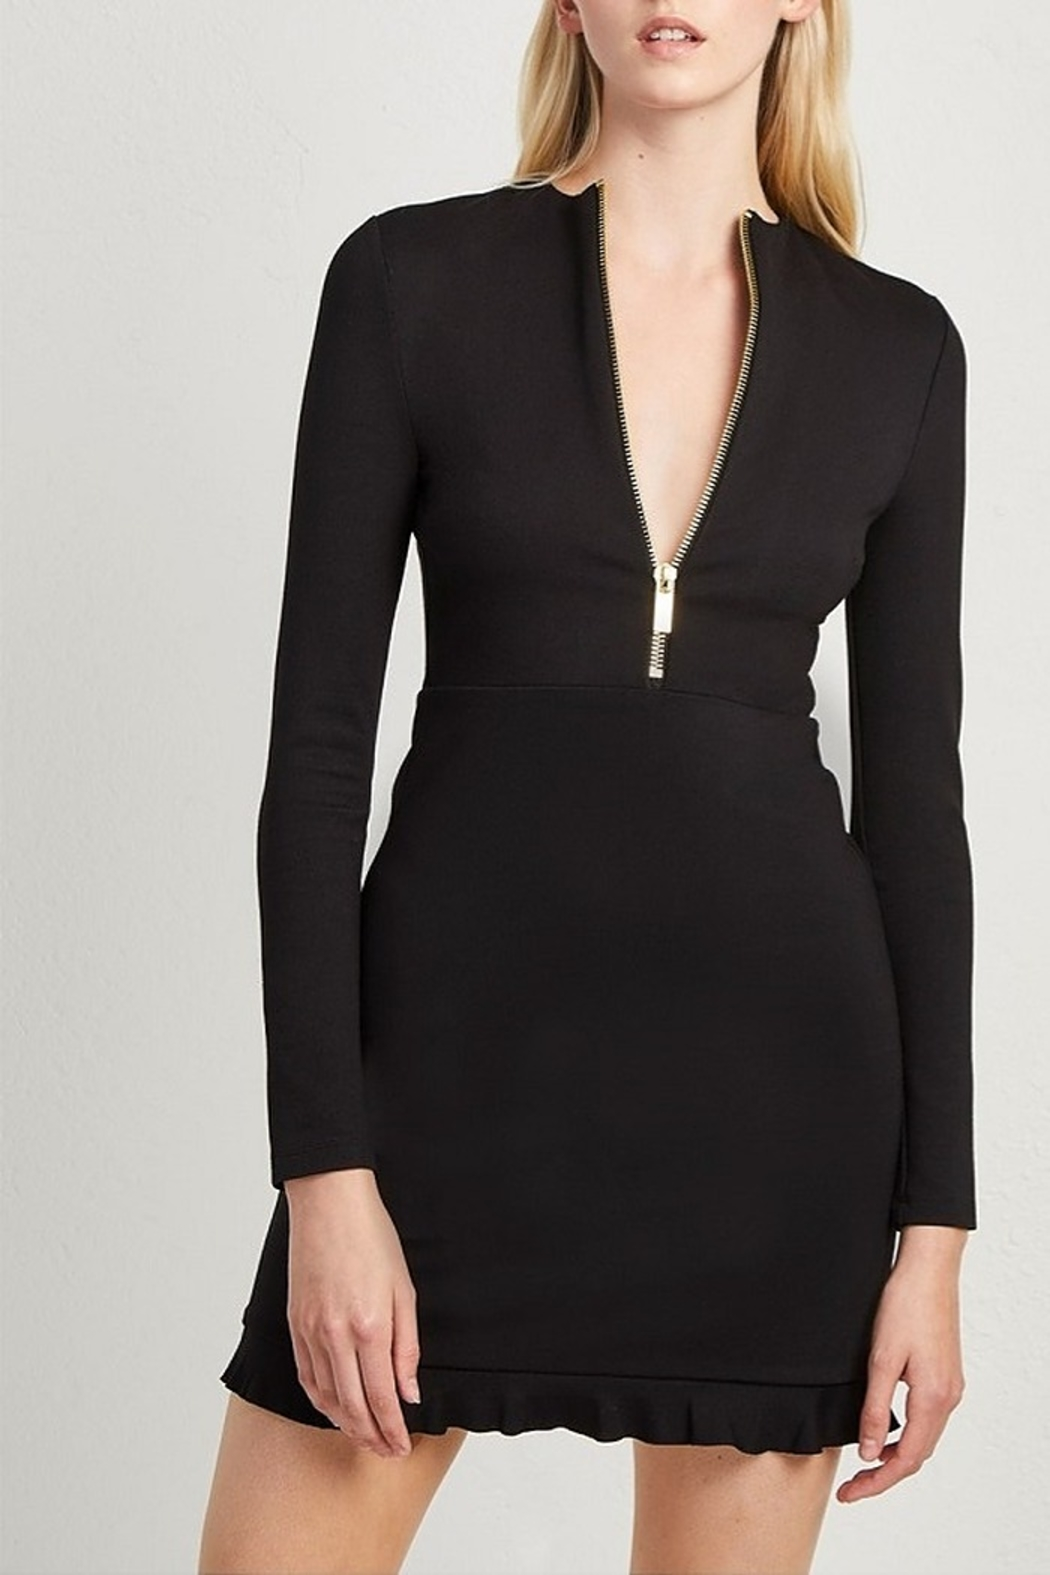 French Connection PONTE JERSEY LONG SLEEVE BLACK DRESS - Main Image